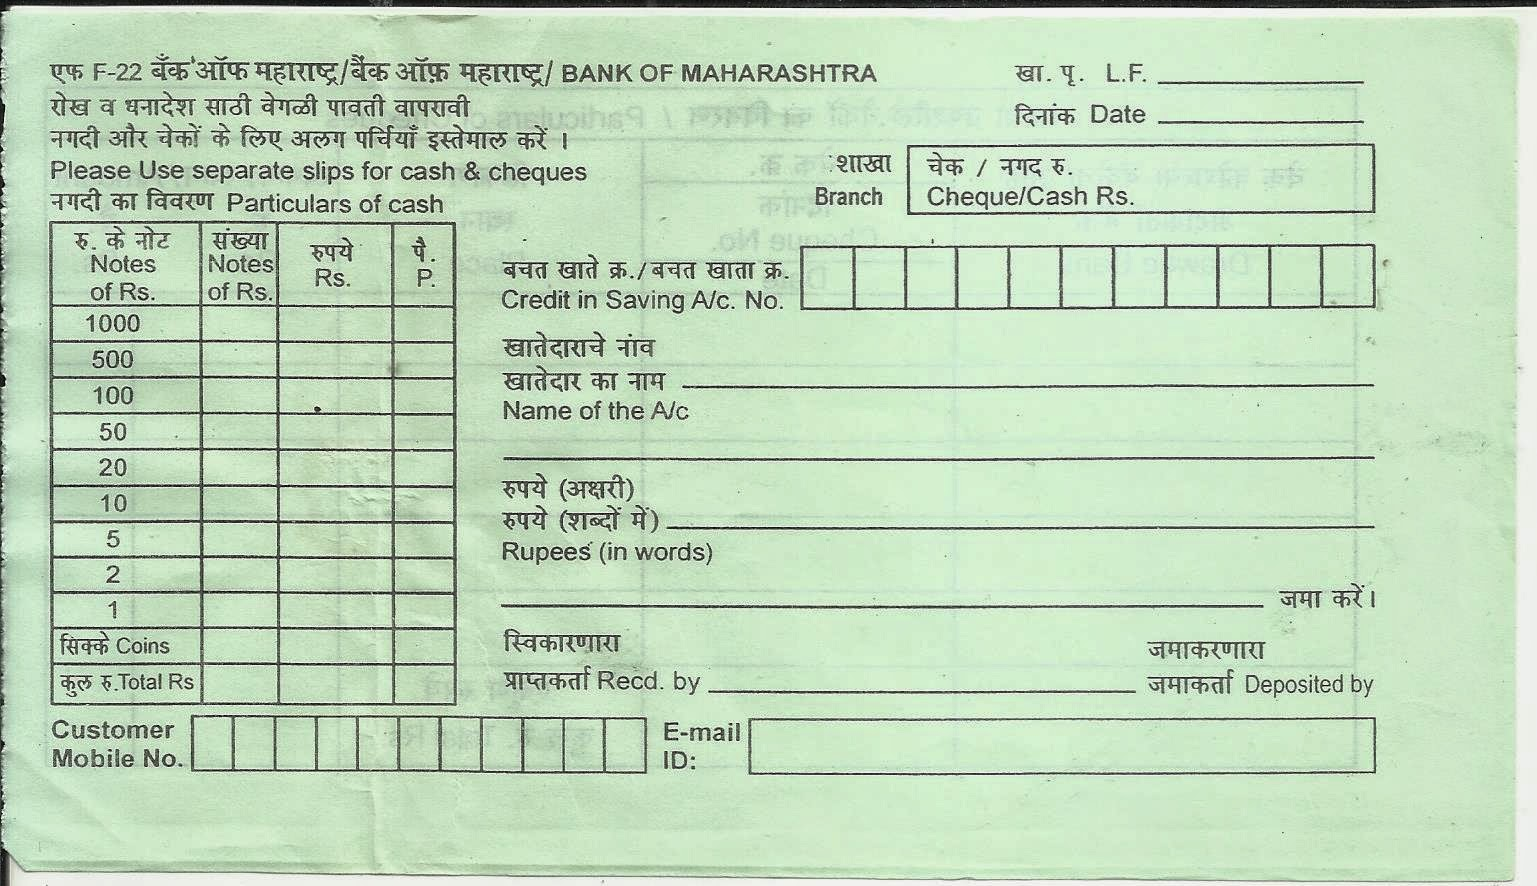 The Bank Of Maharashtra Pay In Slip Is Undoubtedly The Best Because It  Gives So Much Space For People To Write In The Details, But I Suspect This Pay  In ... Intended For Pay In Slips